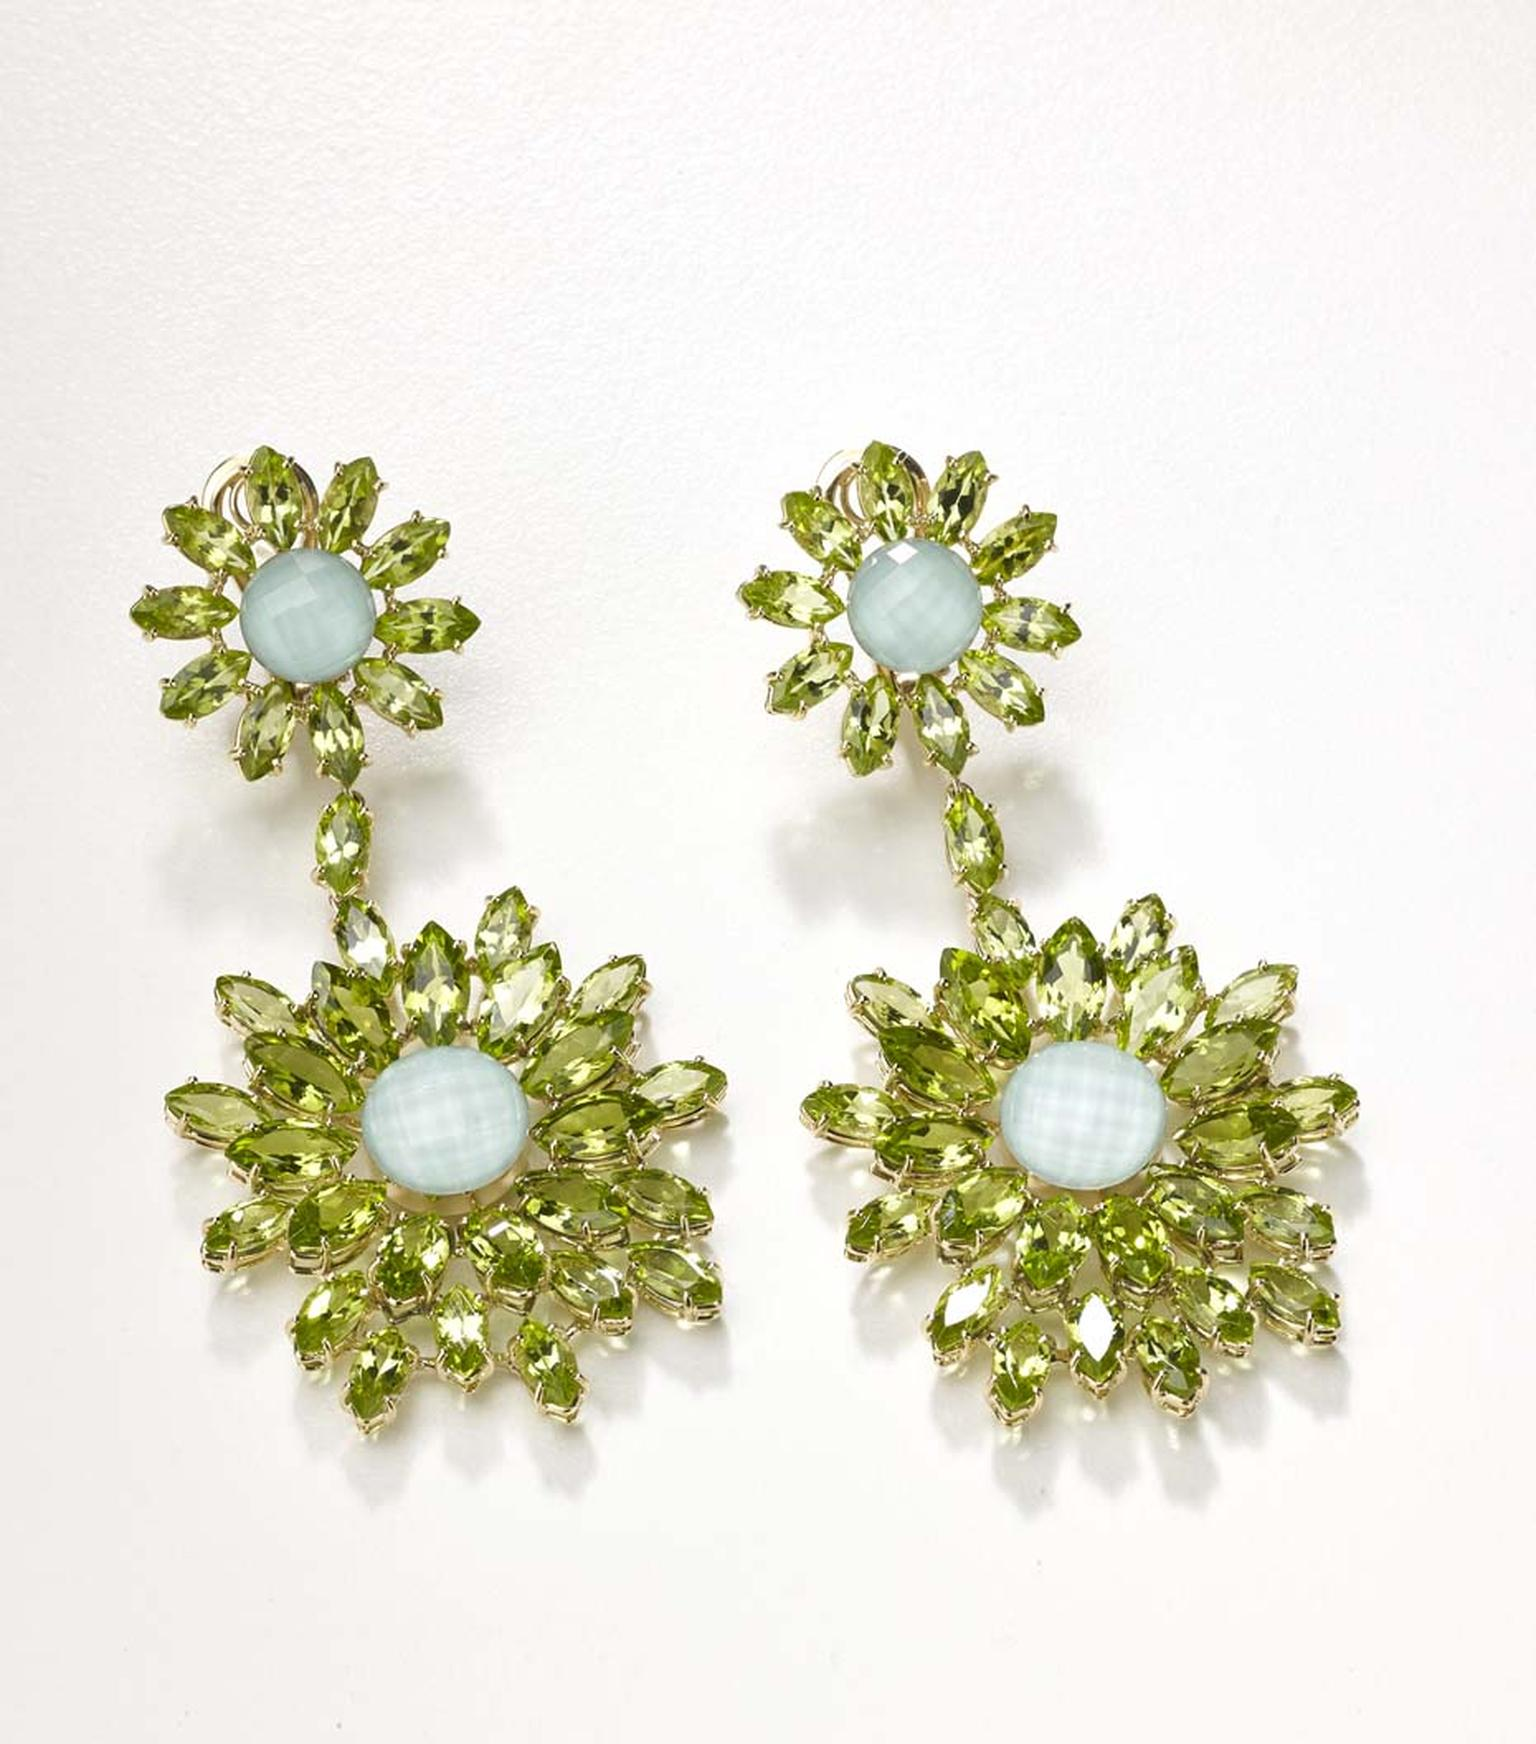 Meissen earrings with ice green porcelain and peridot, from the Haute Couture collection.